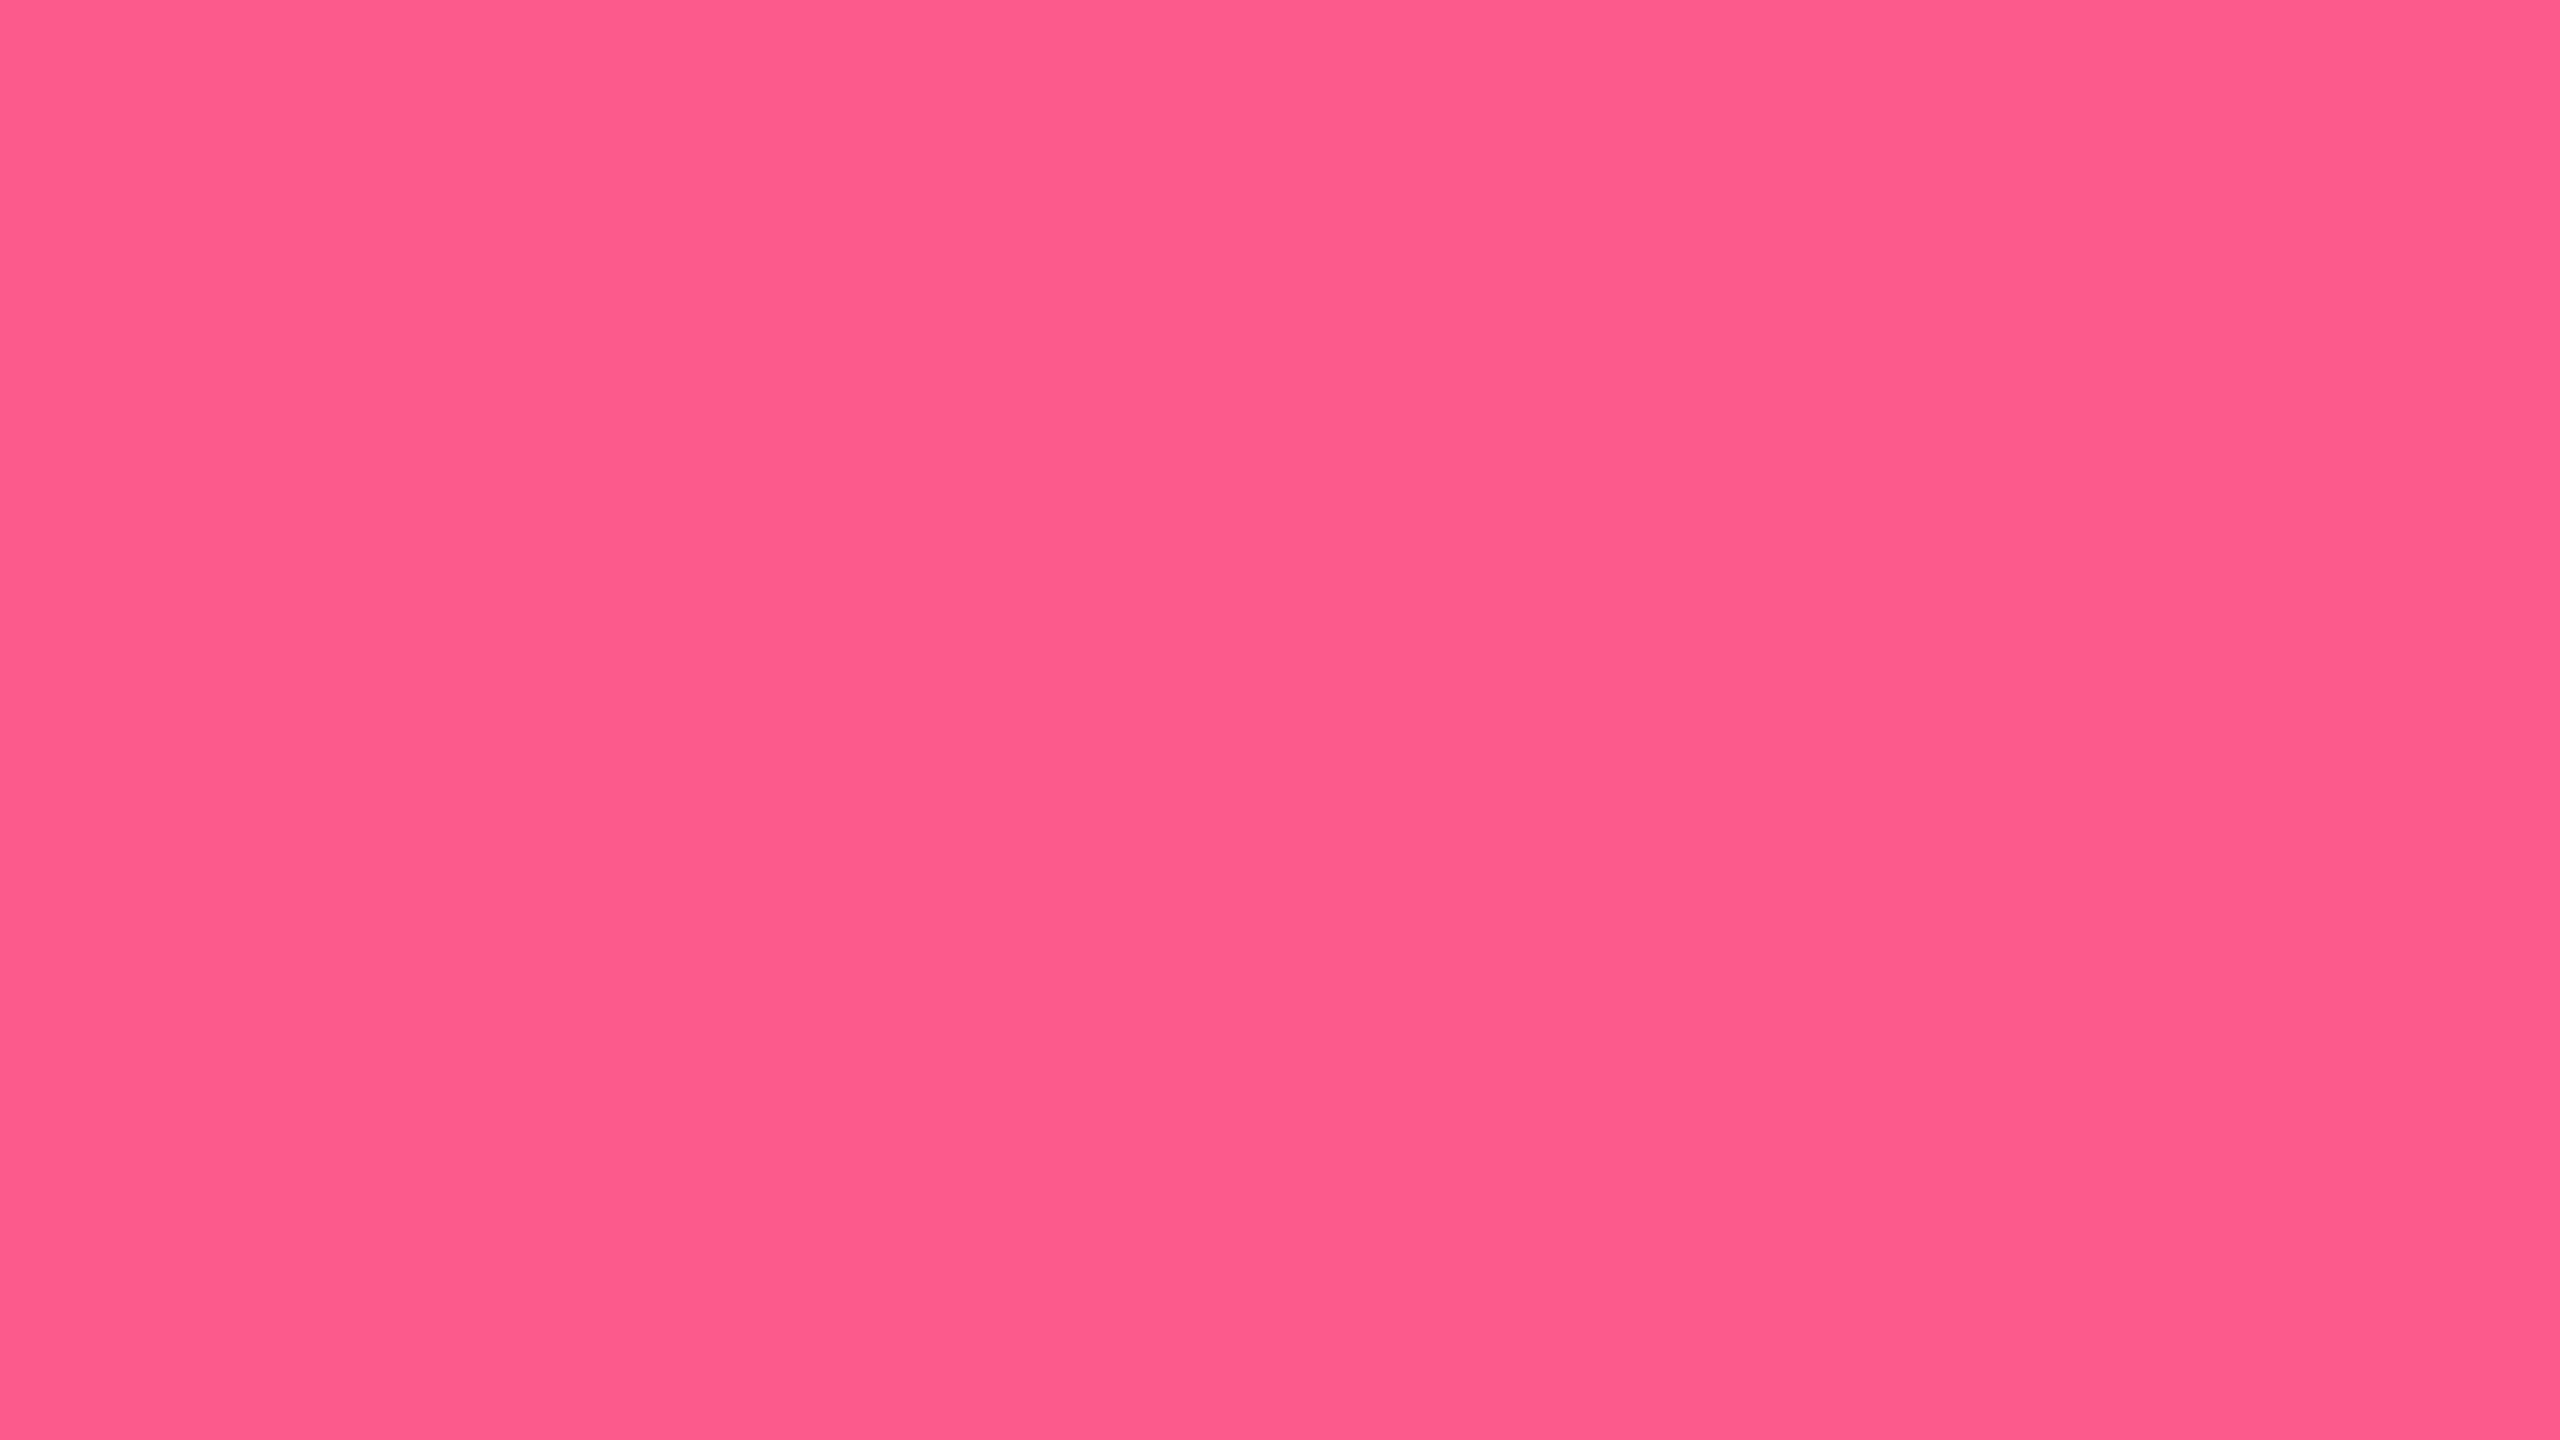 2560x1440 Strawberry Solid Color Background